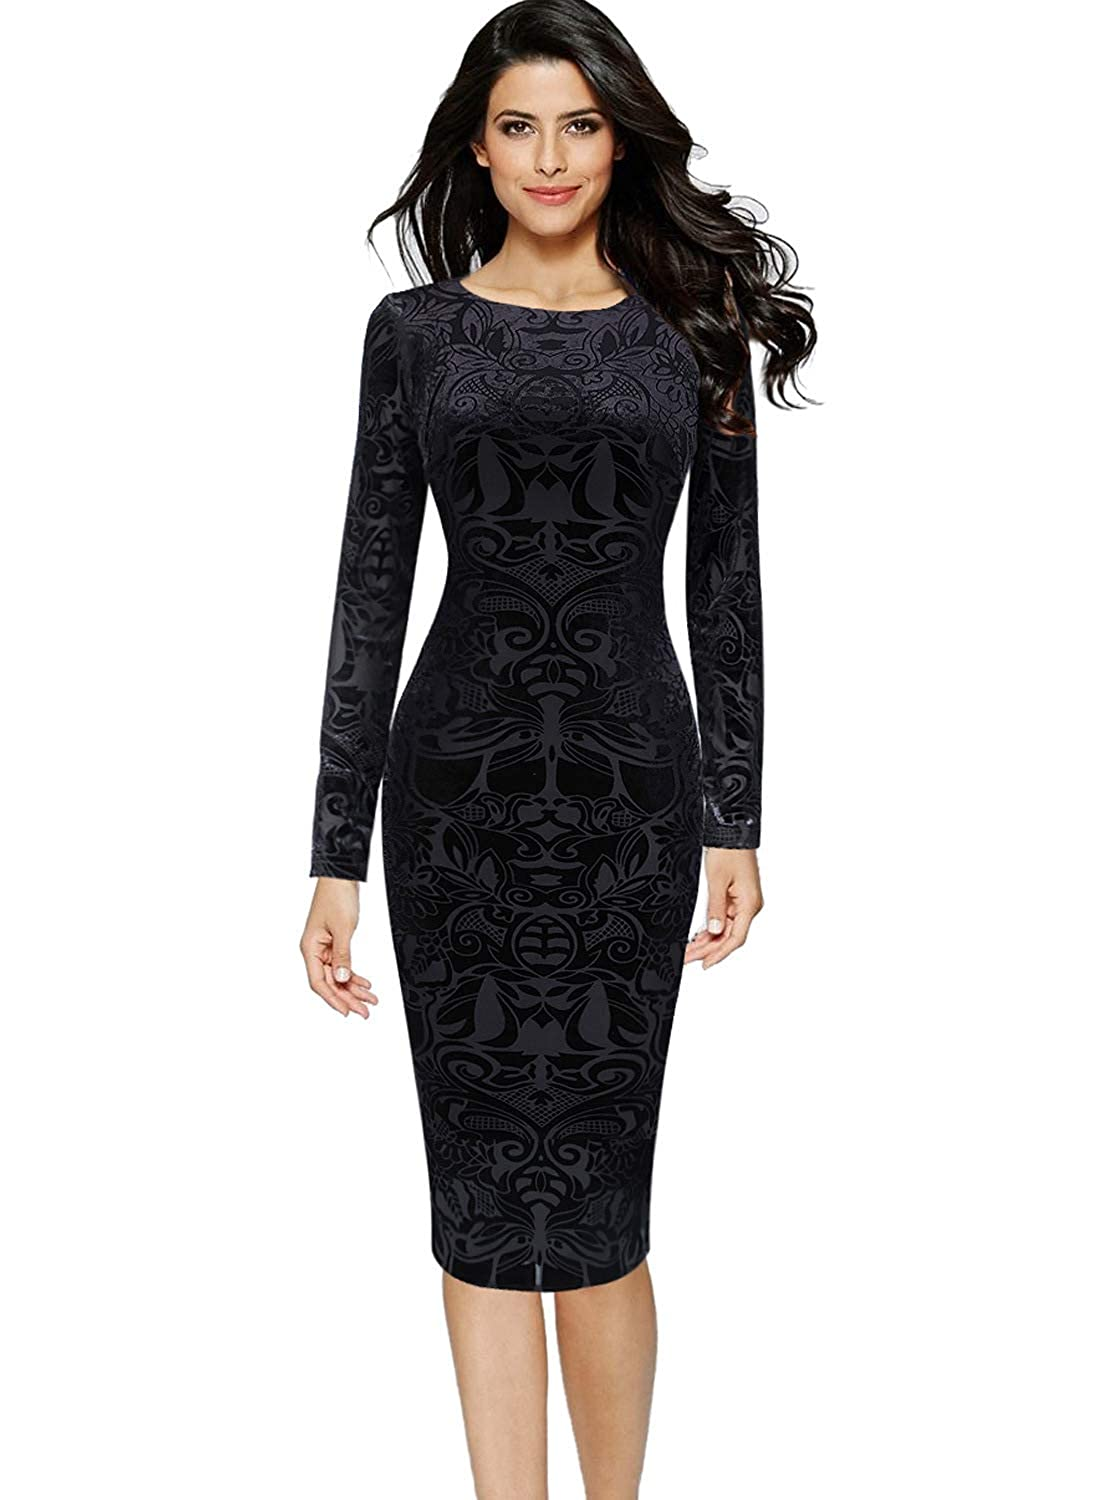 Black VFSHOW Womens Elegant Velvet Casual Cocktail Party Bodycon Sheath Dress